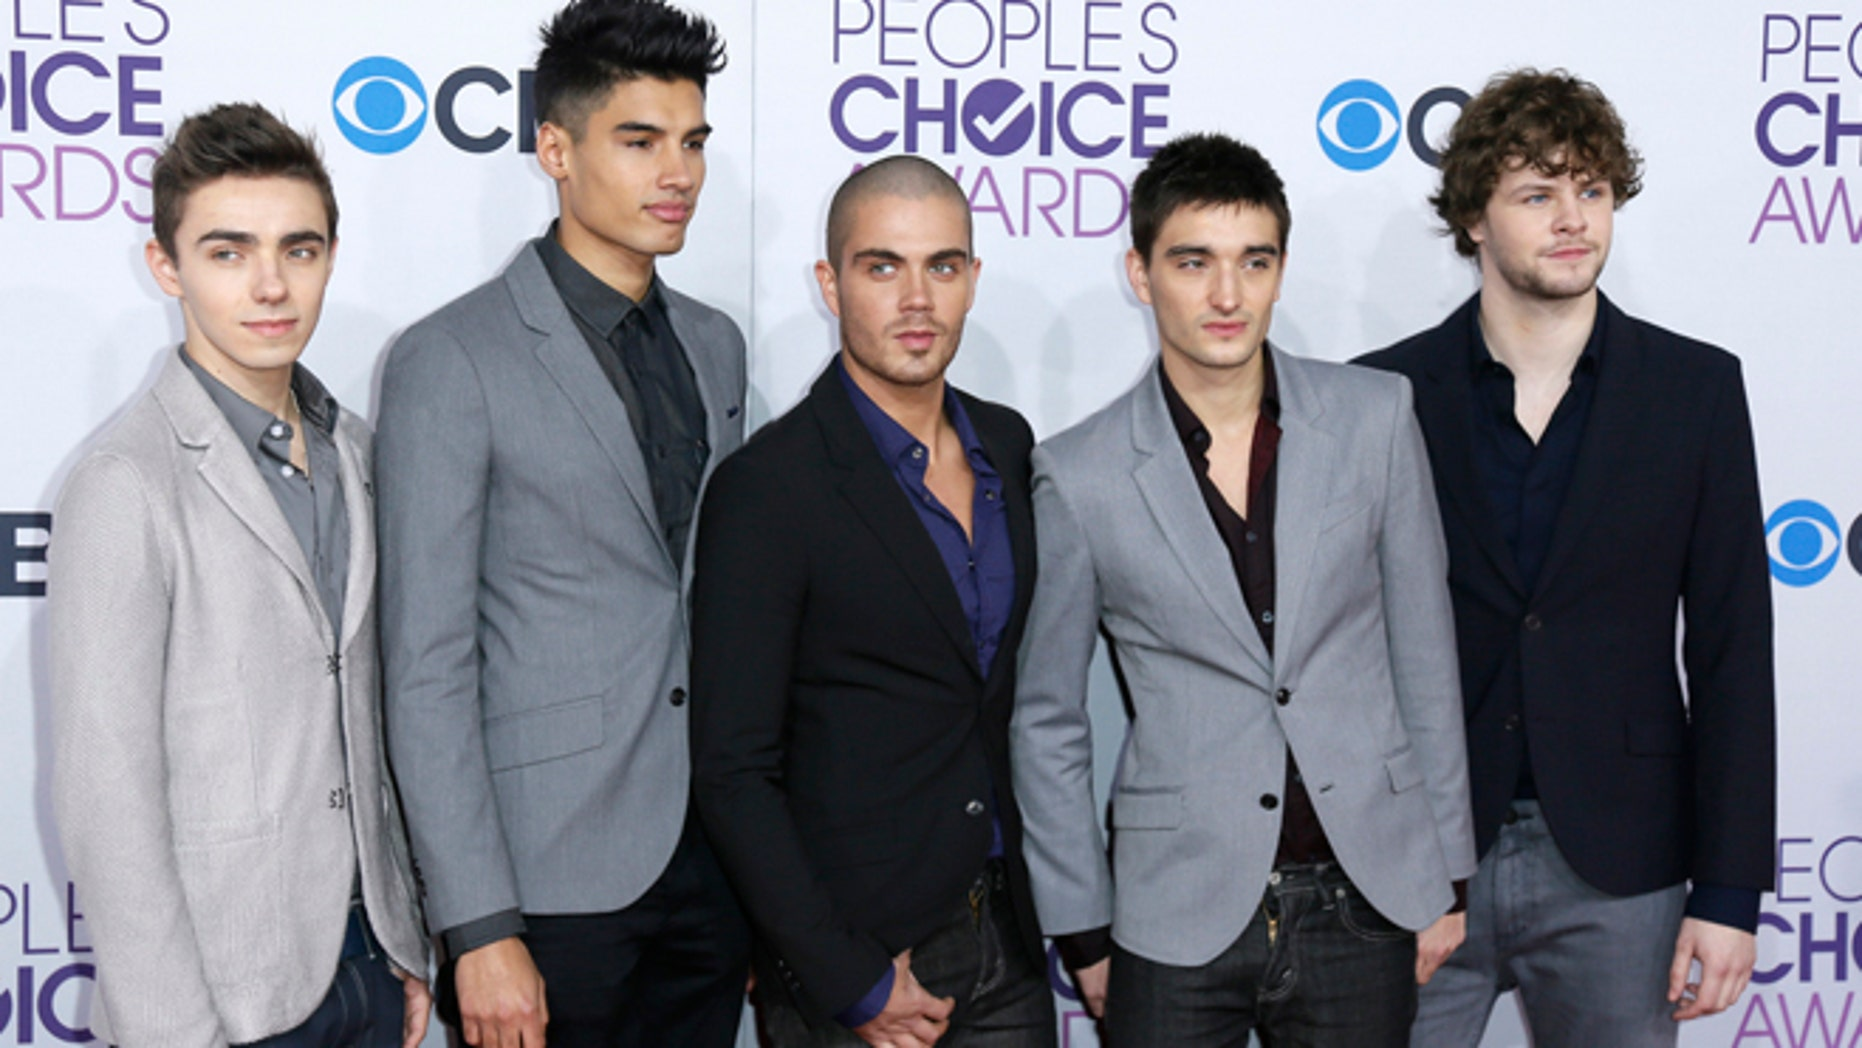 Pop group The Wanted arrive at the 2013 People's Choice Awards in Los Angeles, January 9, 2013.